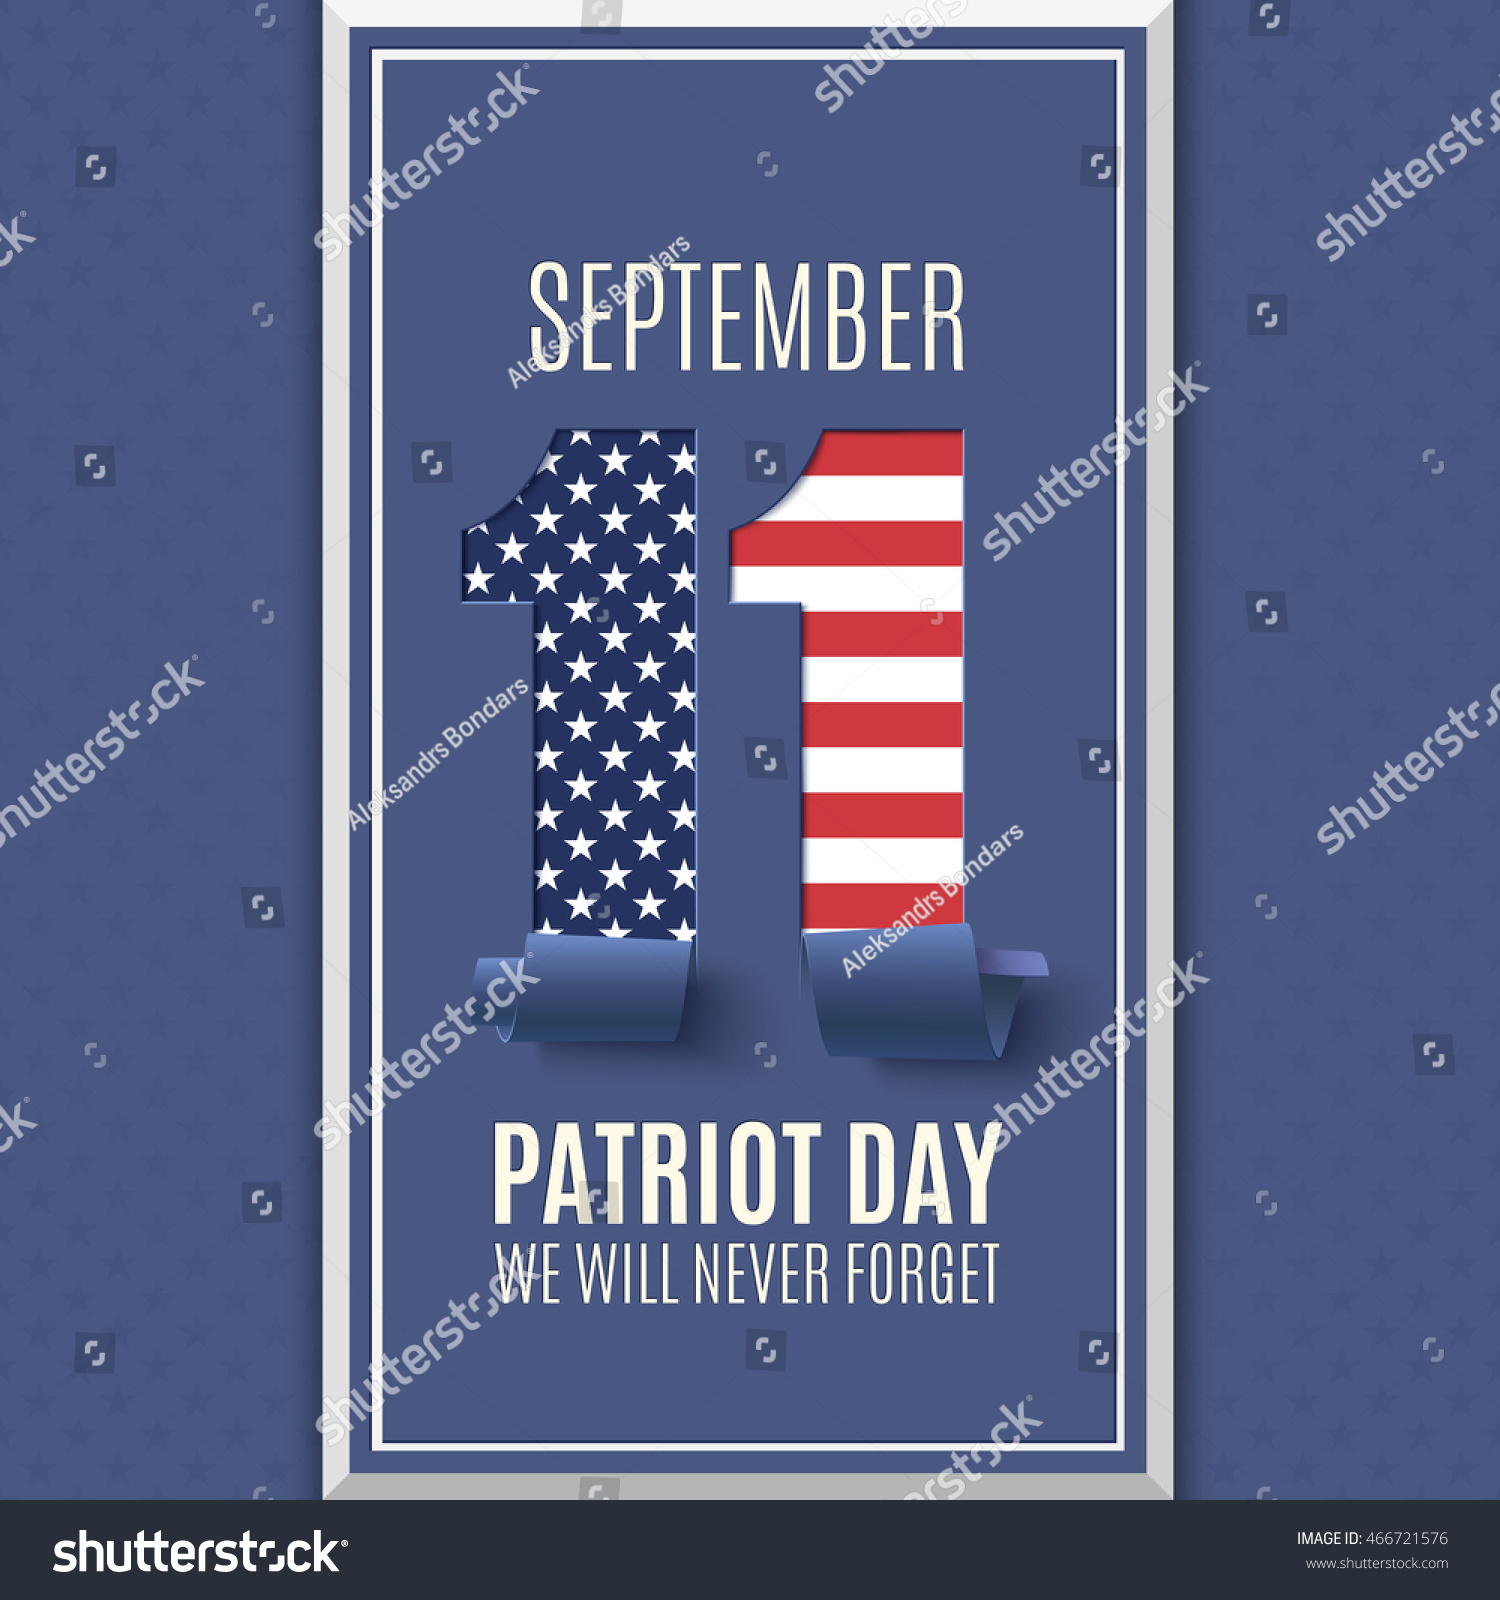 Patriot Day Abstract Background 11 September Stock Vector